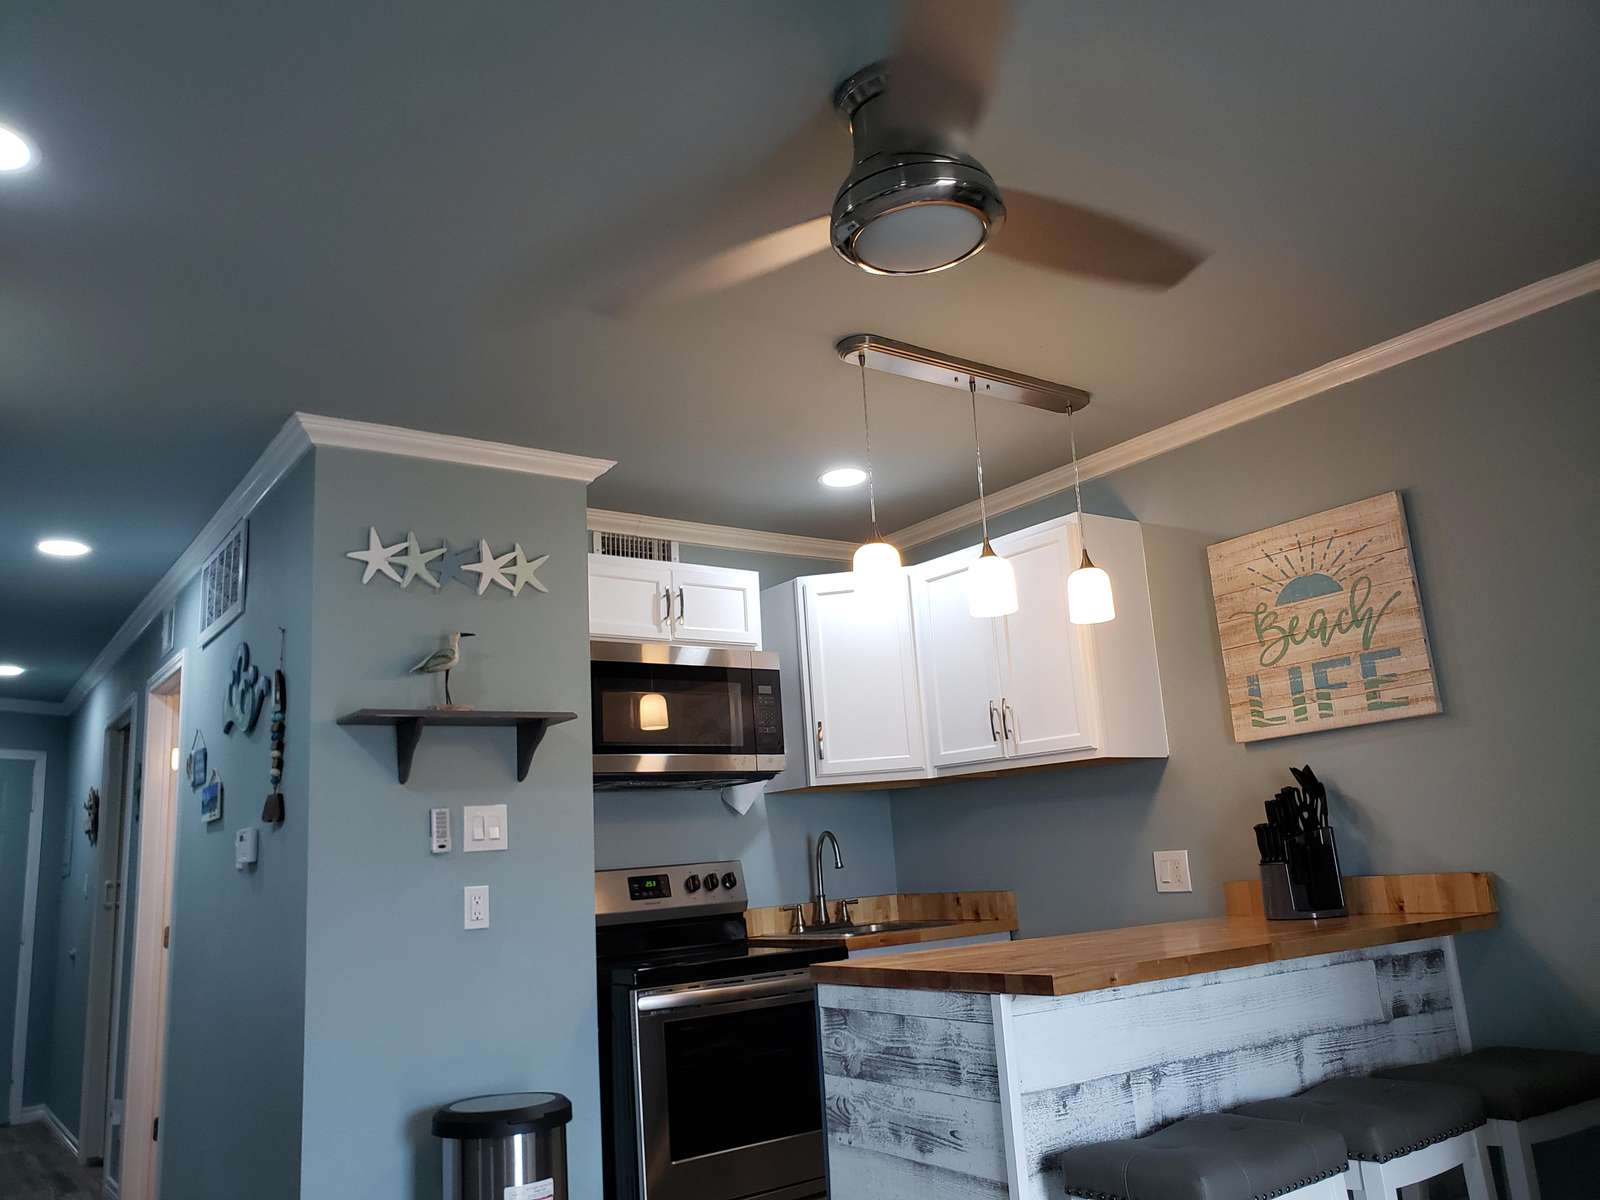 ceiling fans in the living area and bedroom